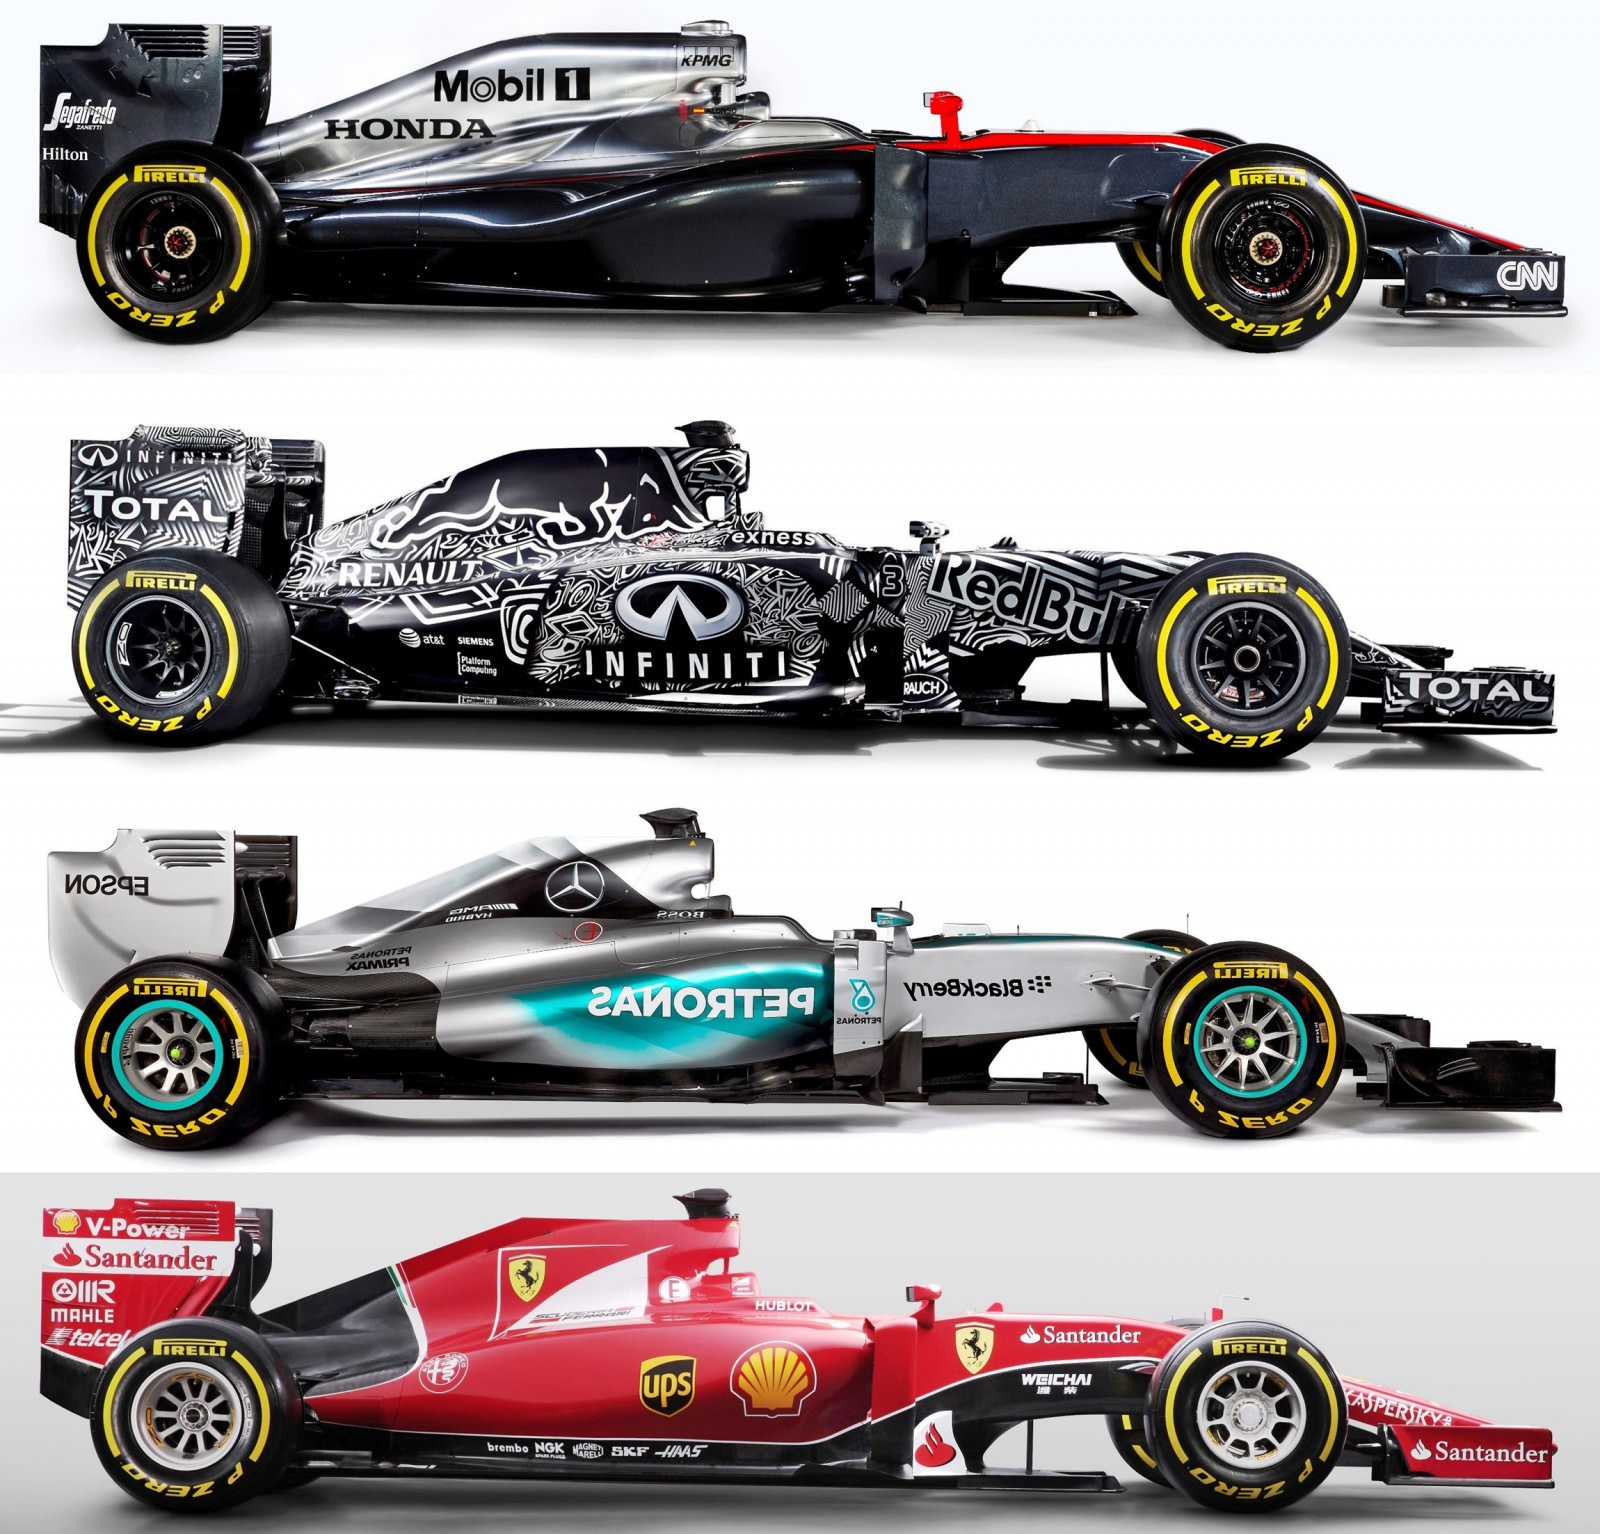 2015 F1 Cars Comparo - Infiniti RB11 vs McLaren-Honda MP4-30 vs AMG W06 vs Ferrari SF15T 29